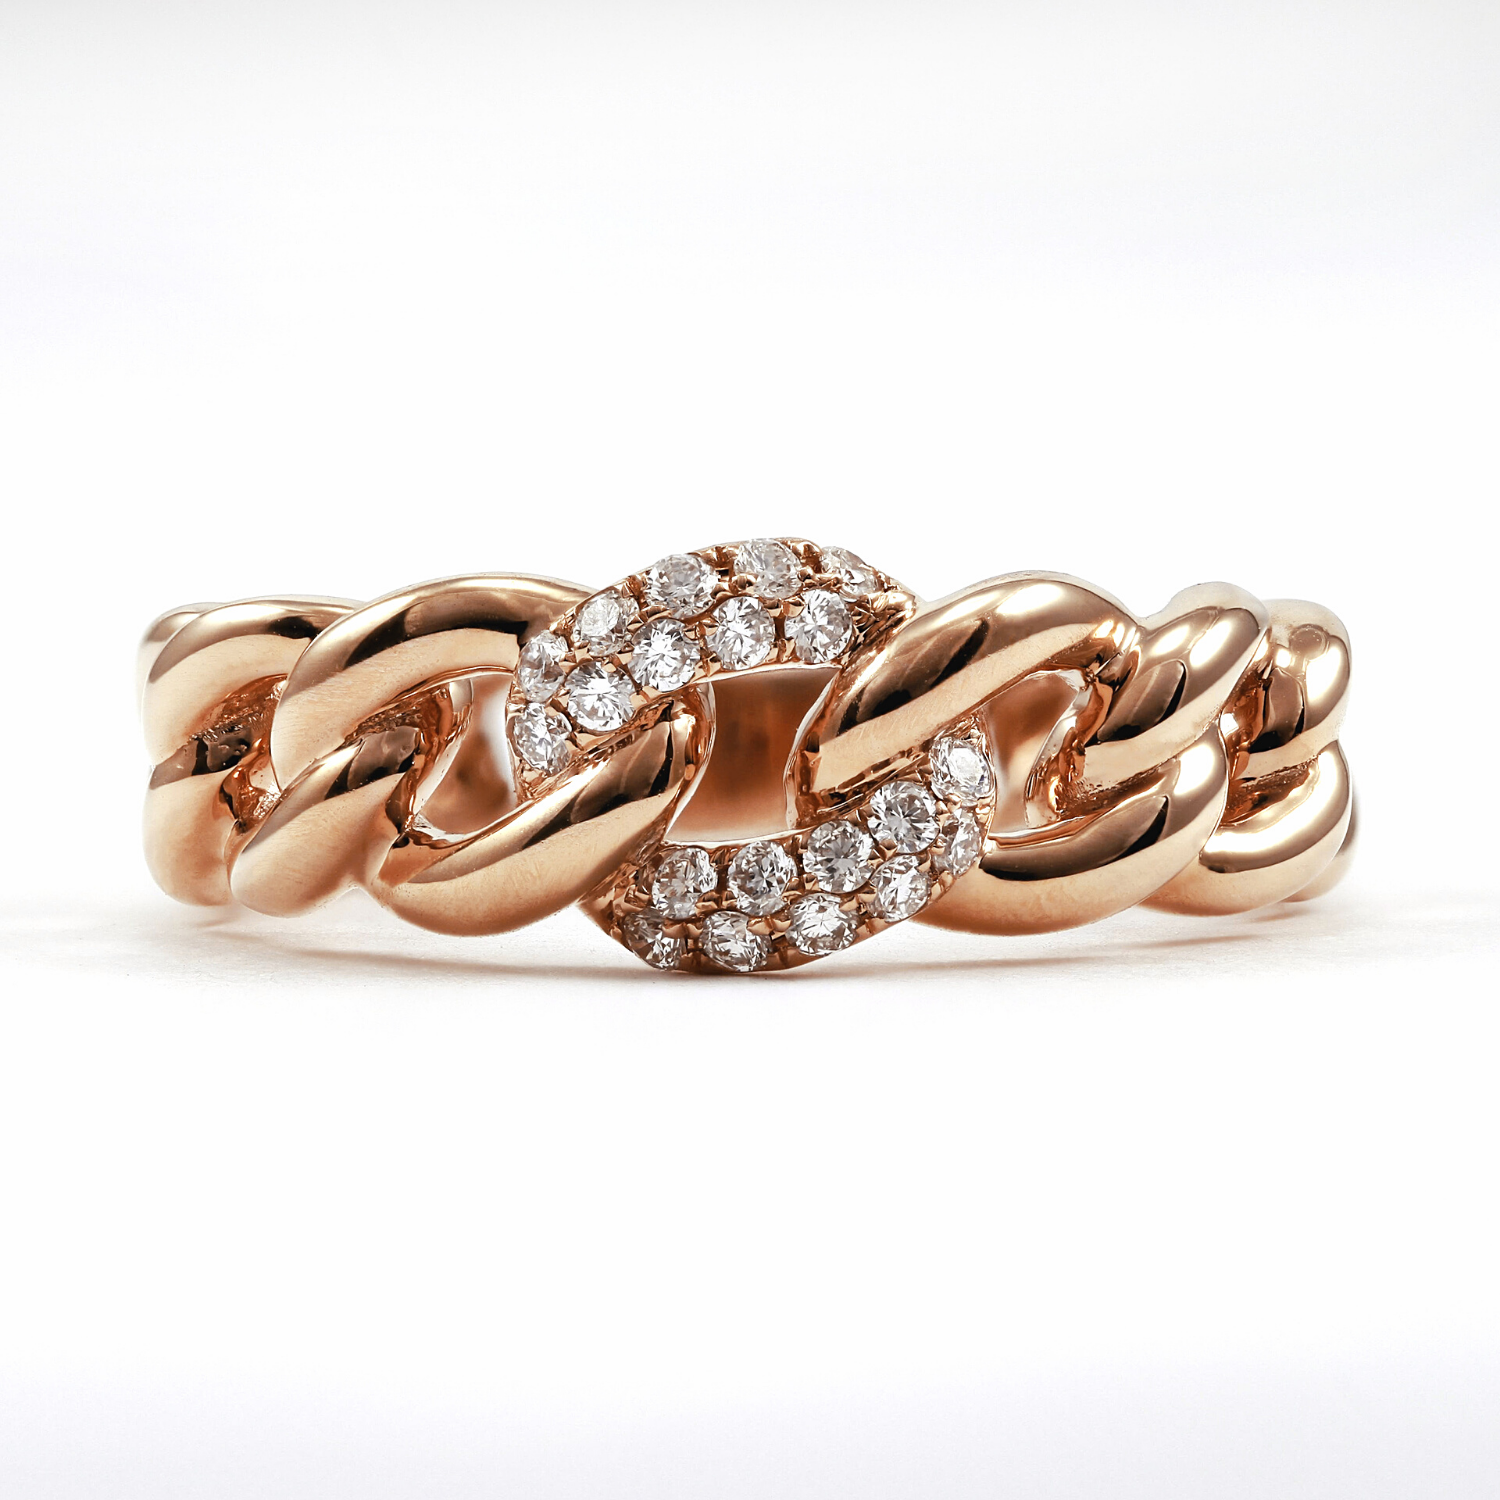 18K Rose Gold Pave Diamond Chain Ring